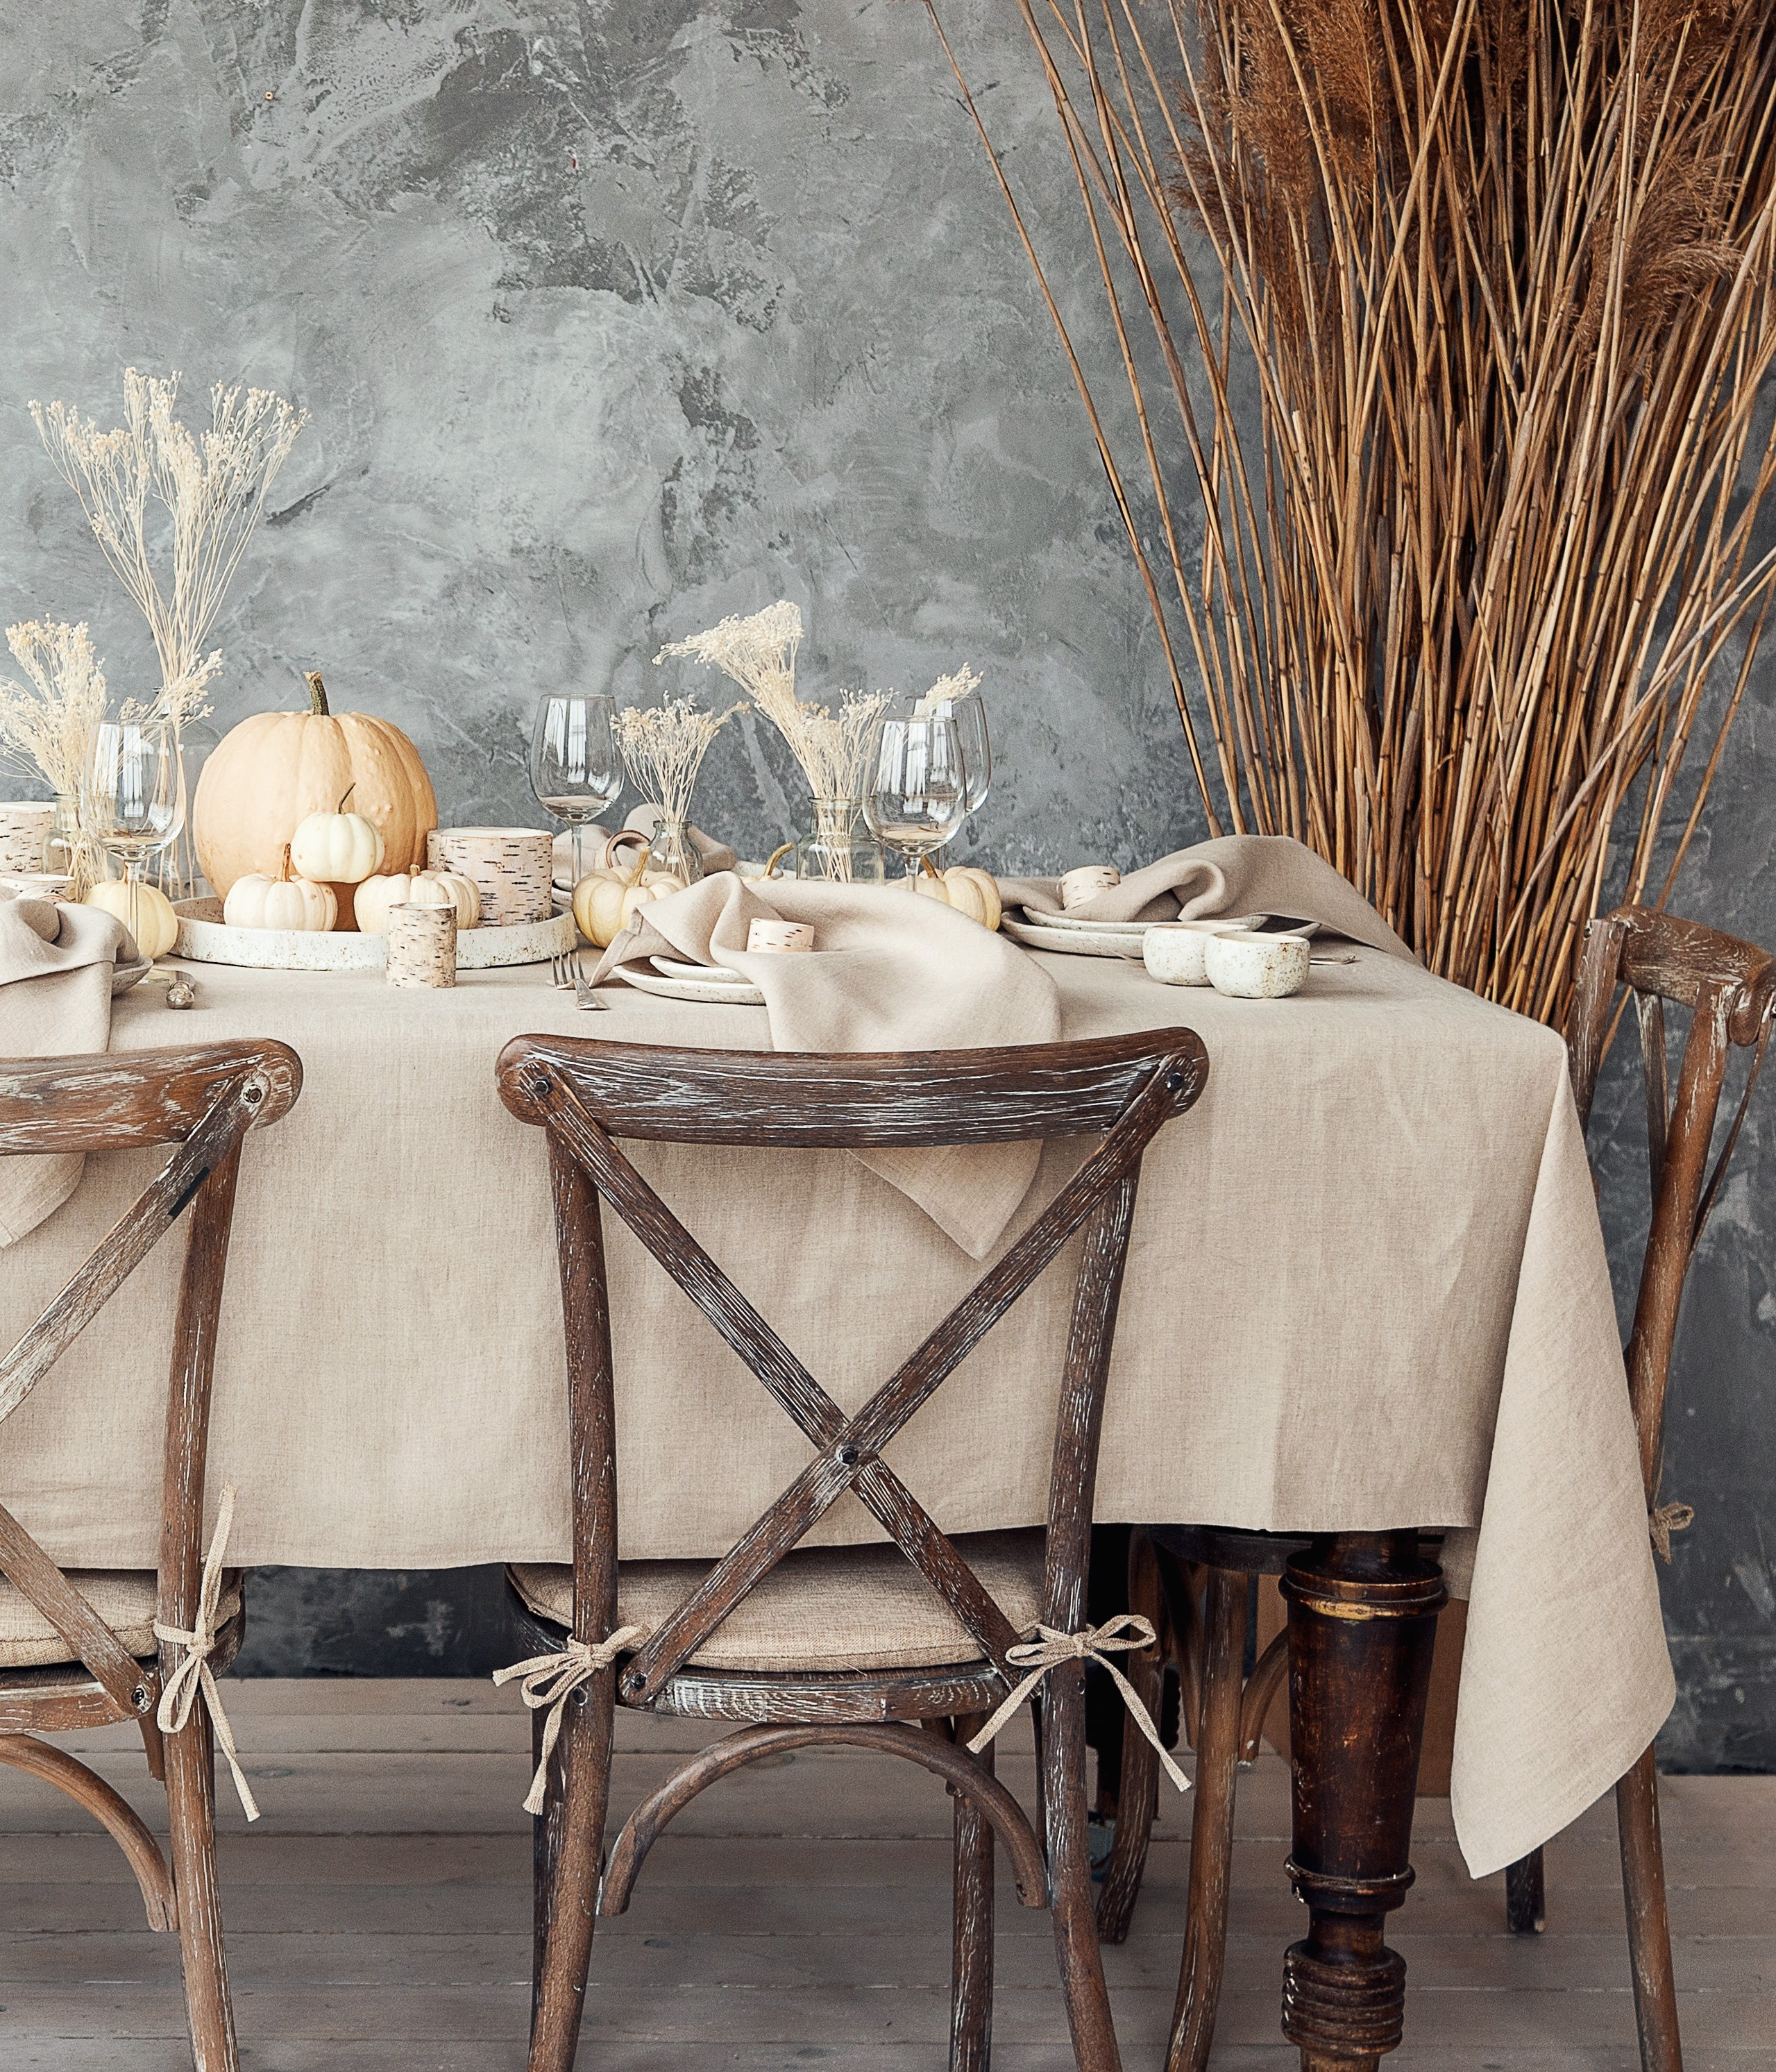 Rustic Thanksgiving table.